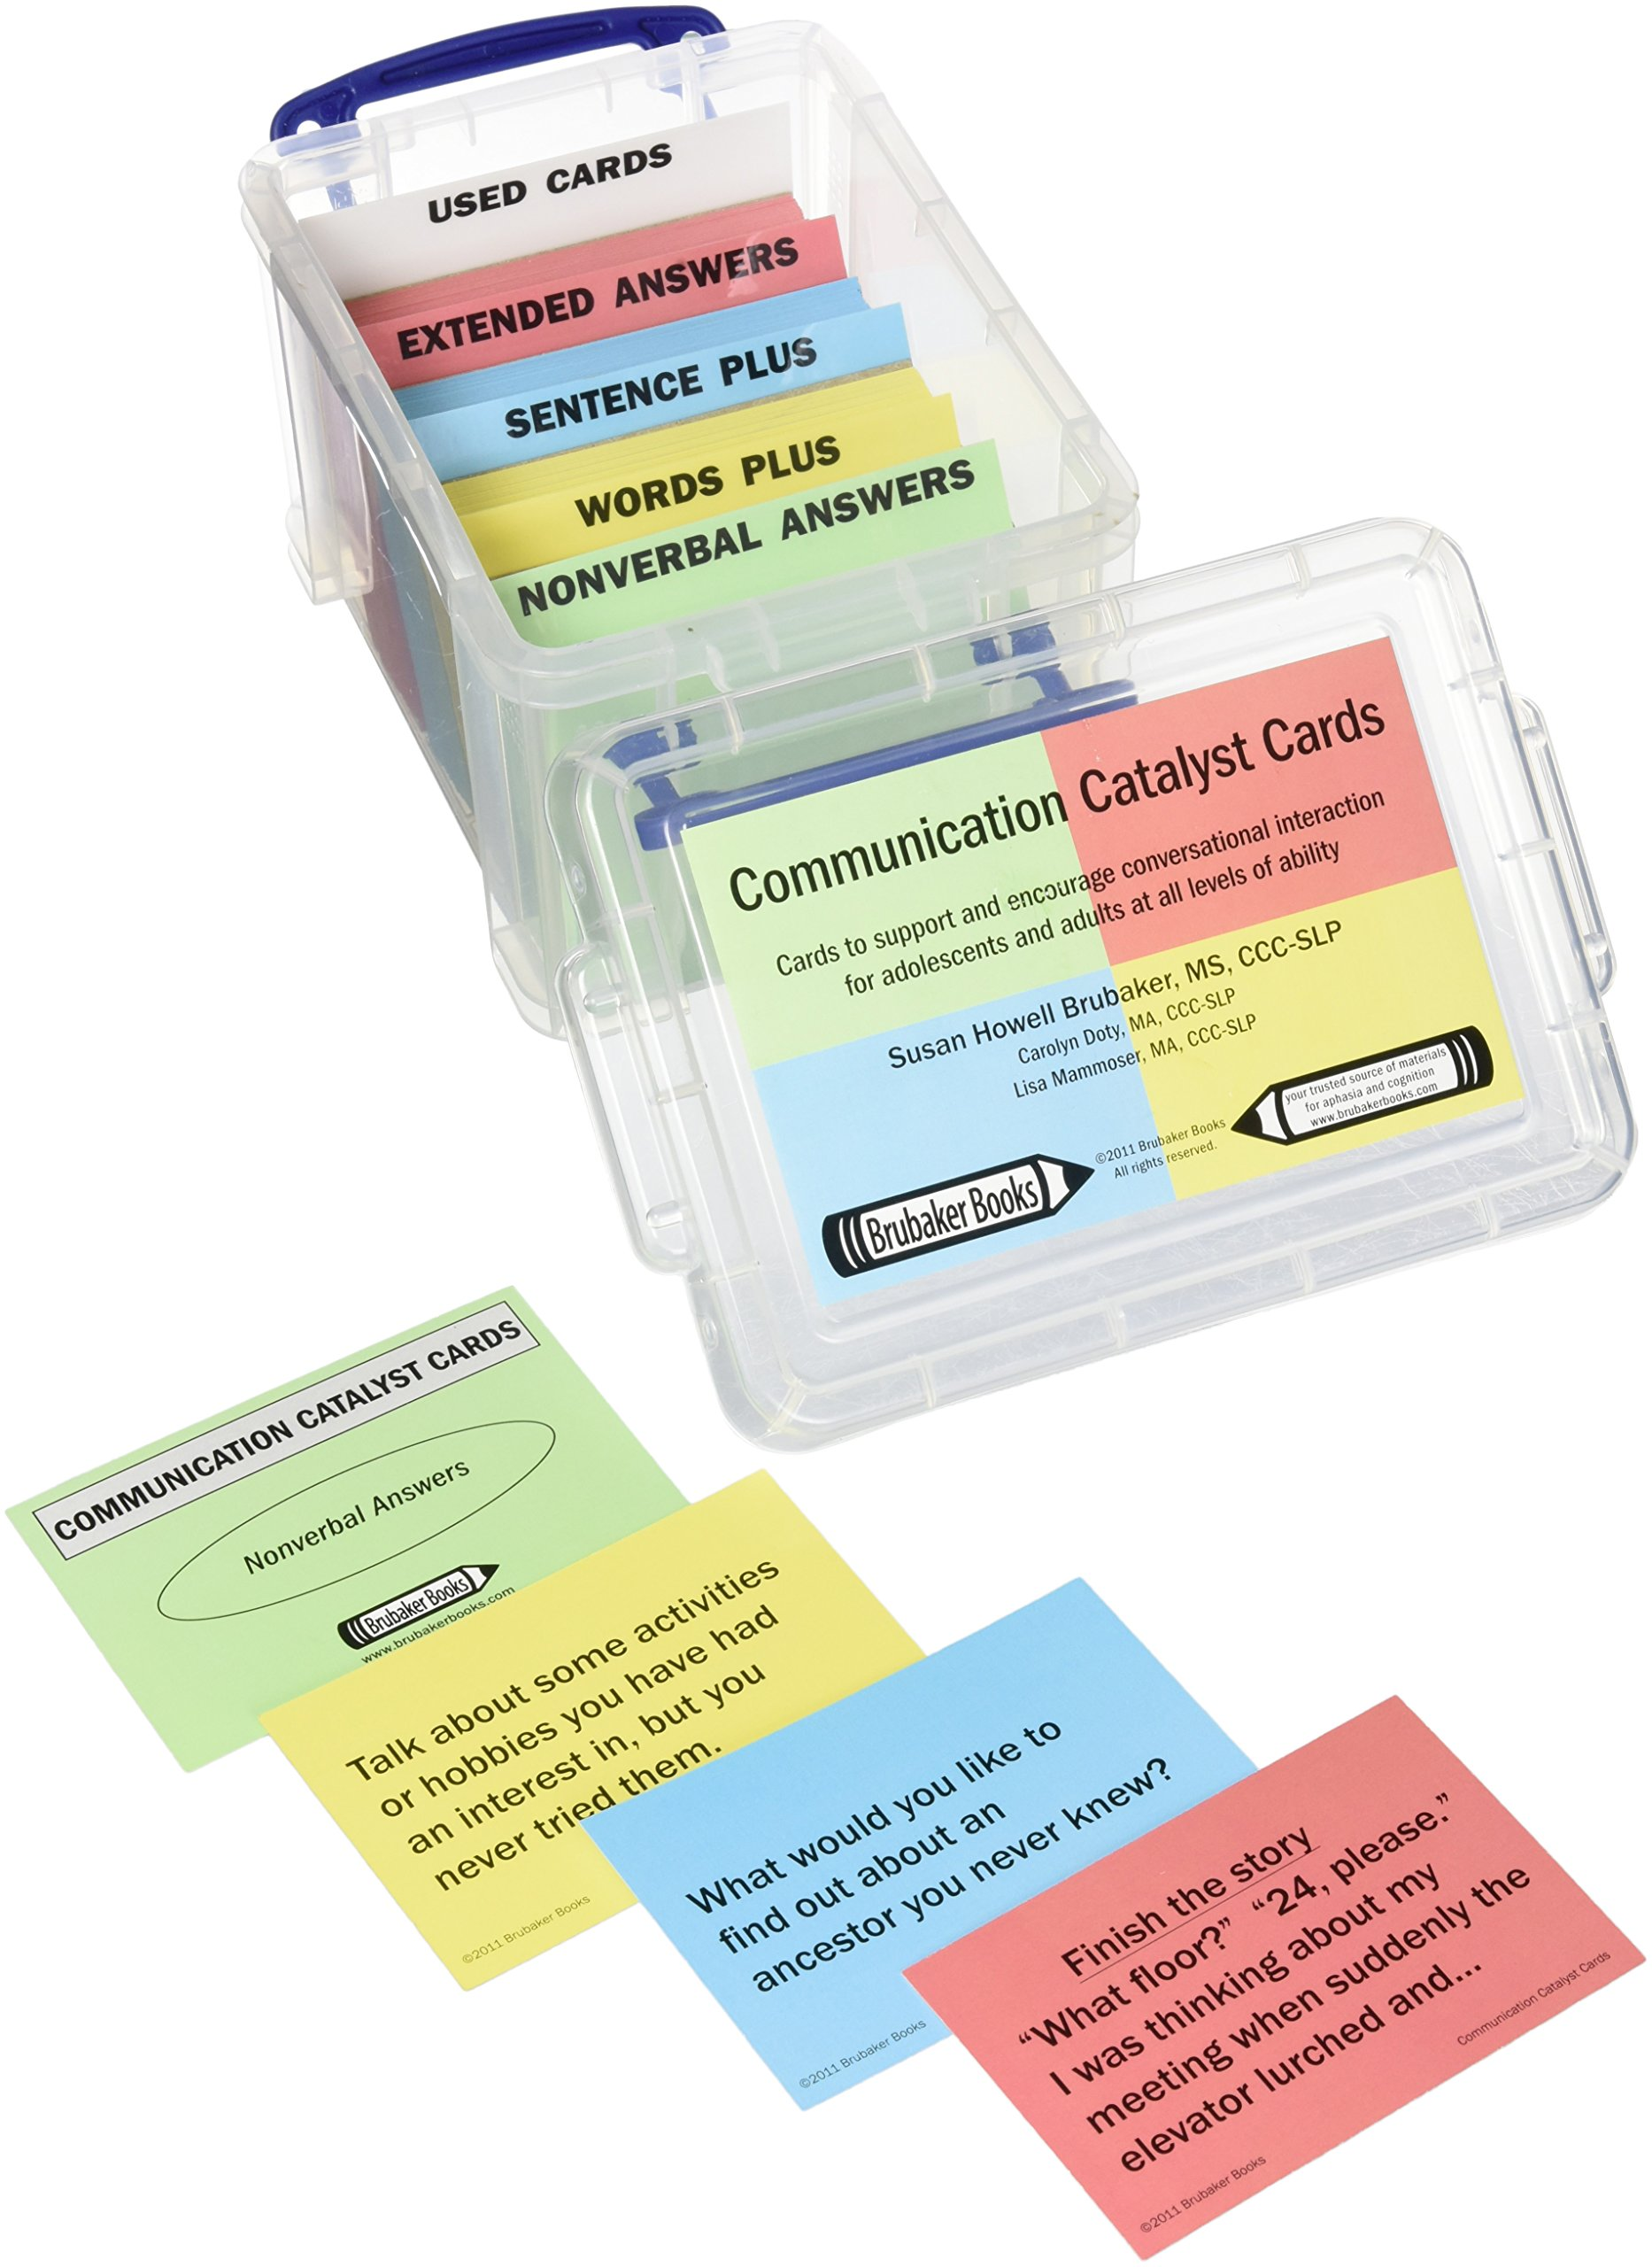 Communication Catalyst Cards